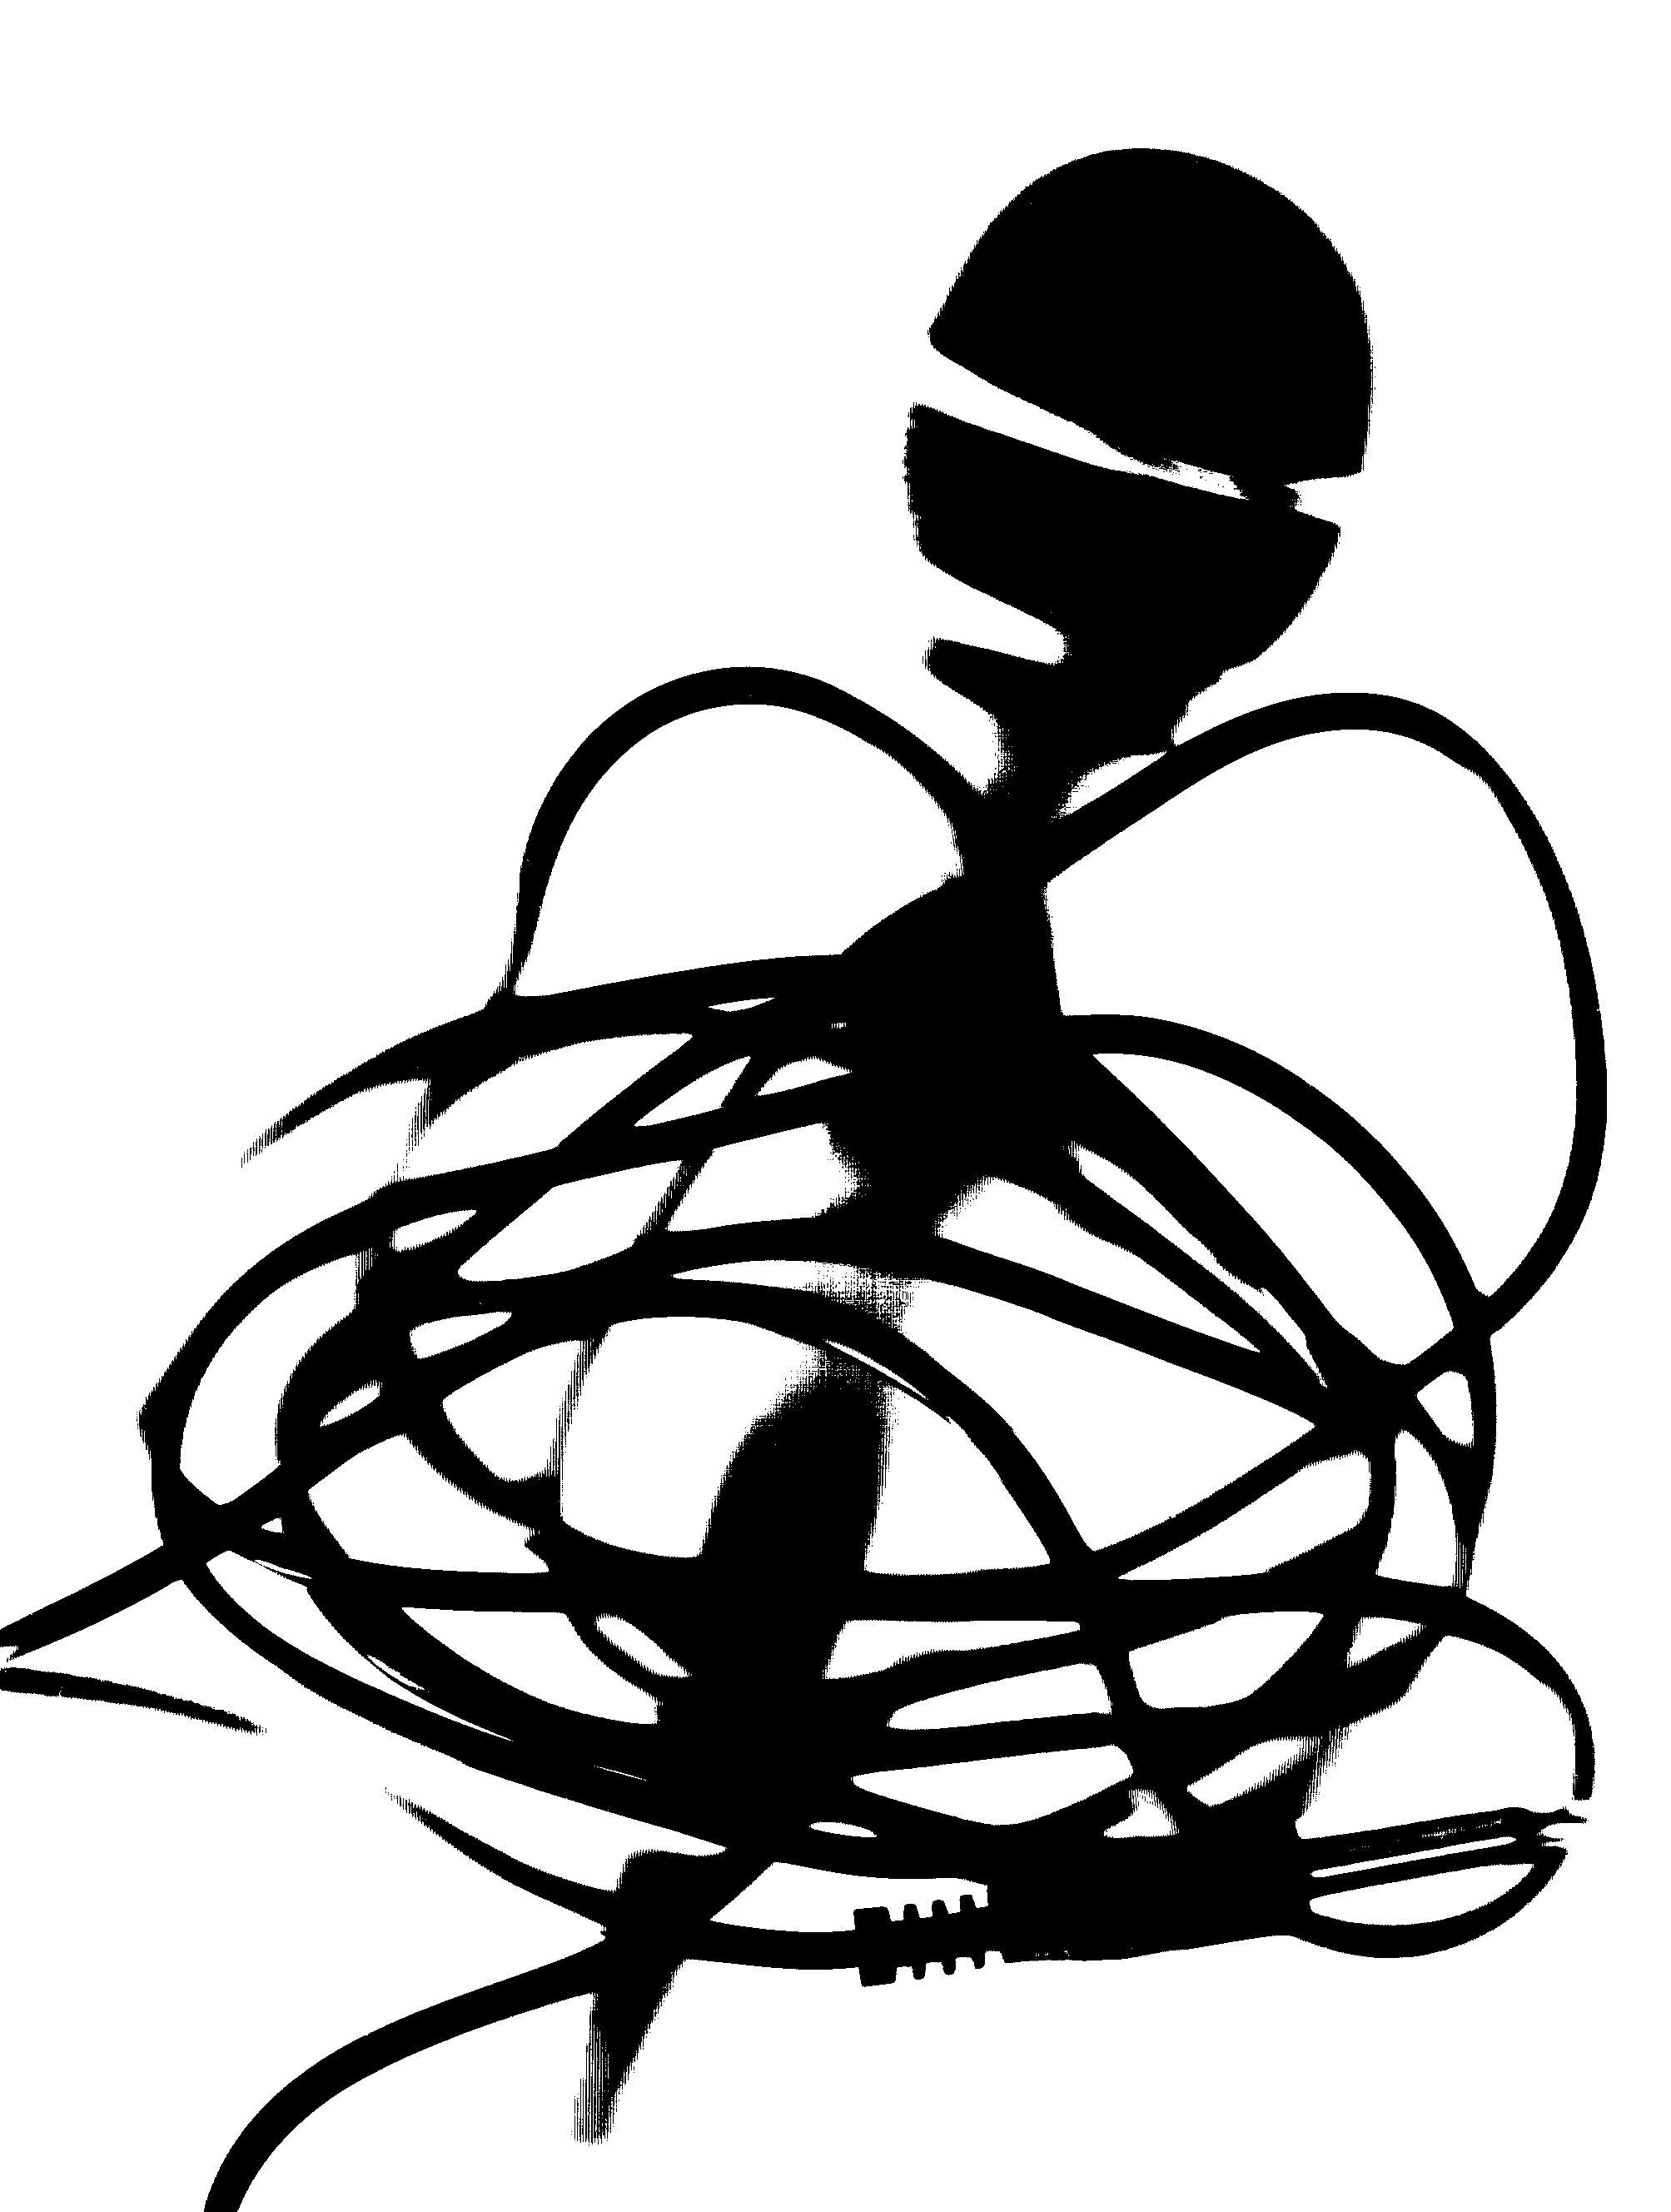 2007x2656 Microphone Drawing Symbol